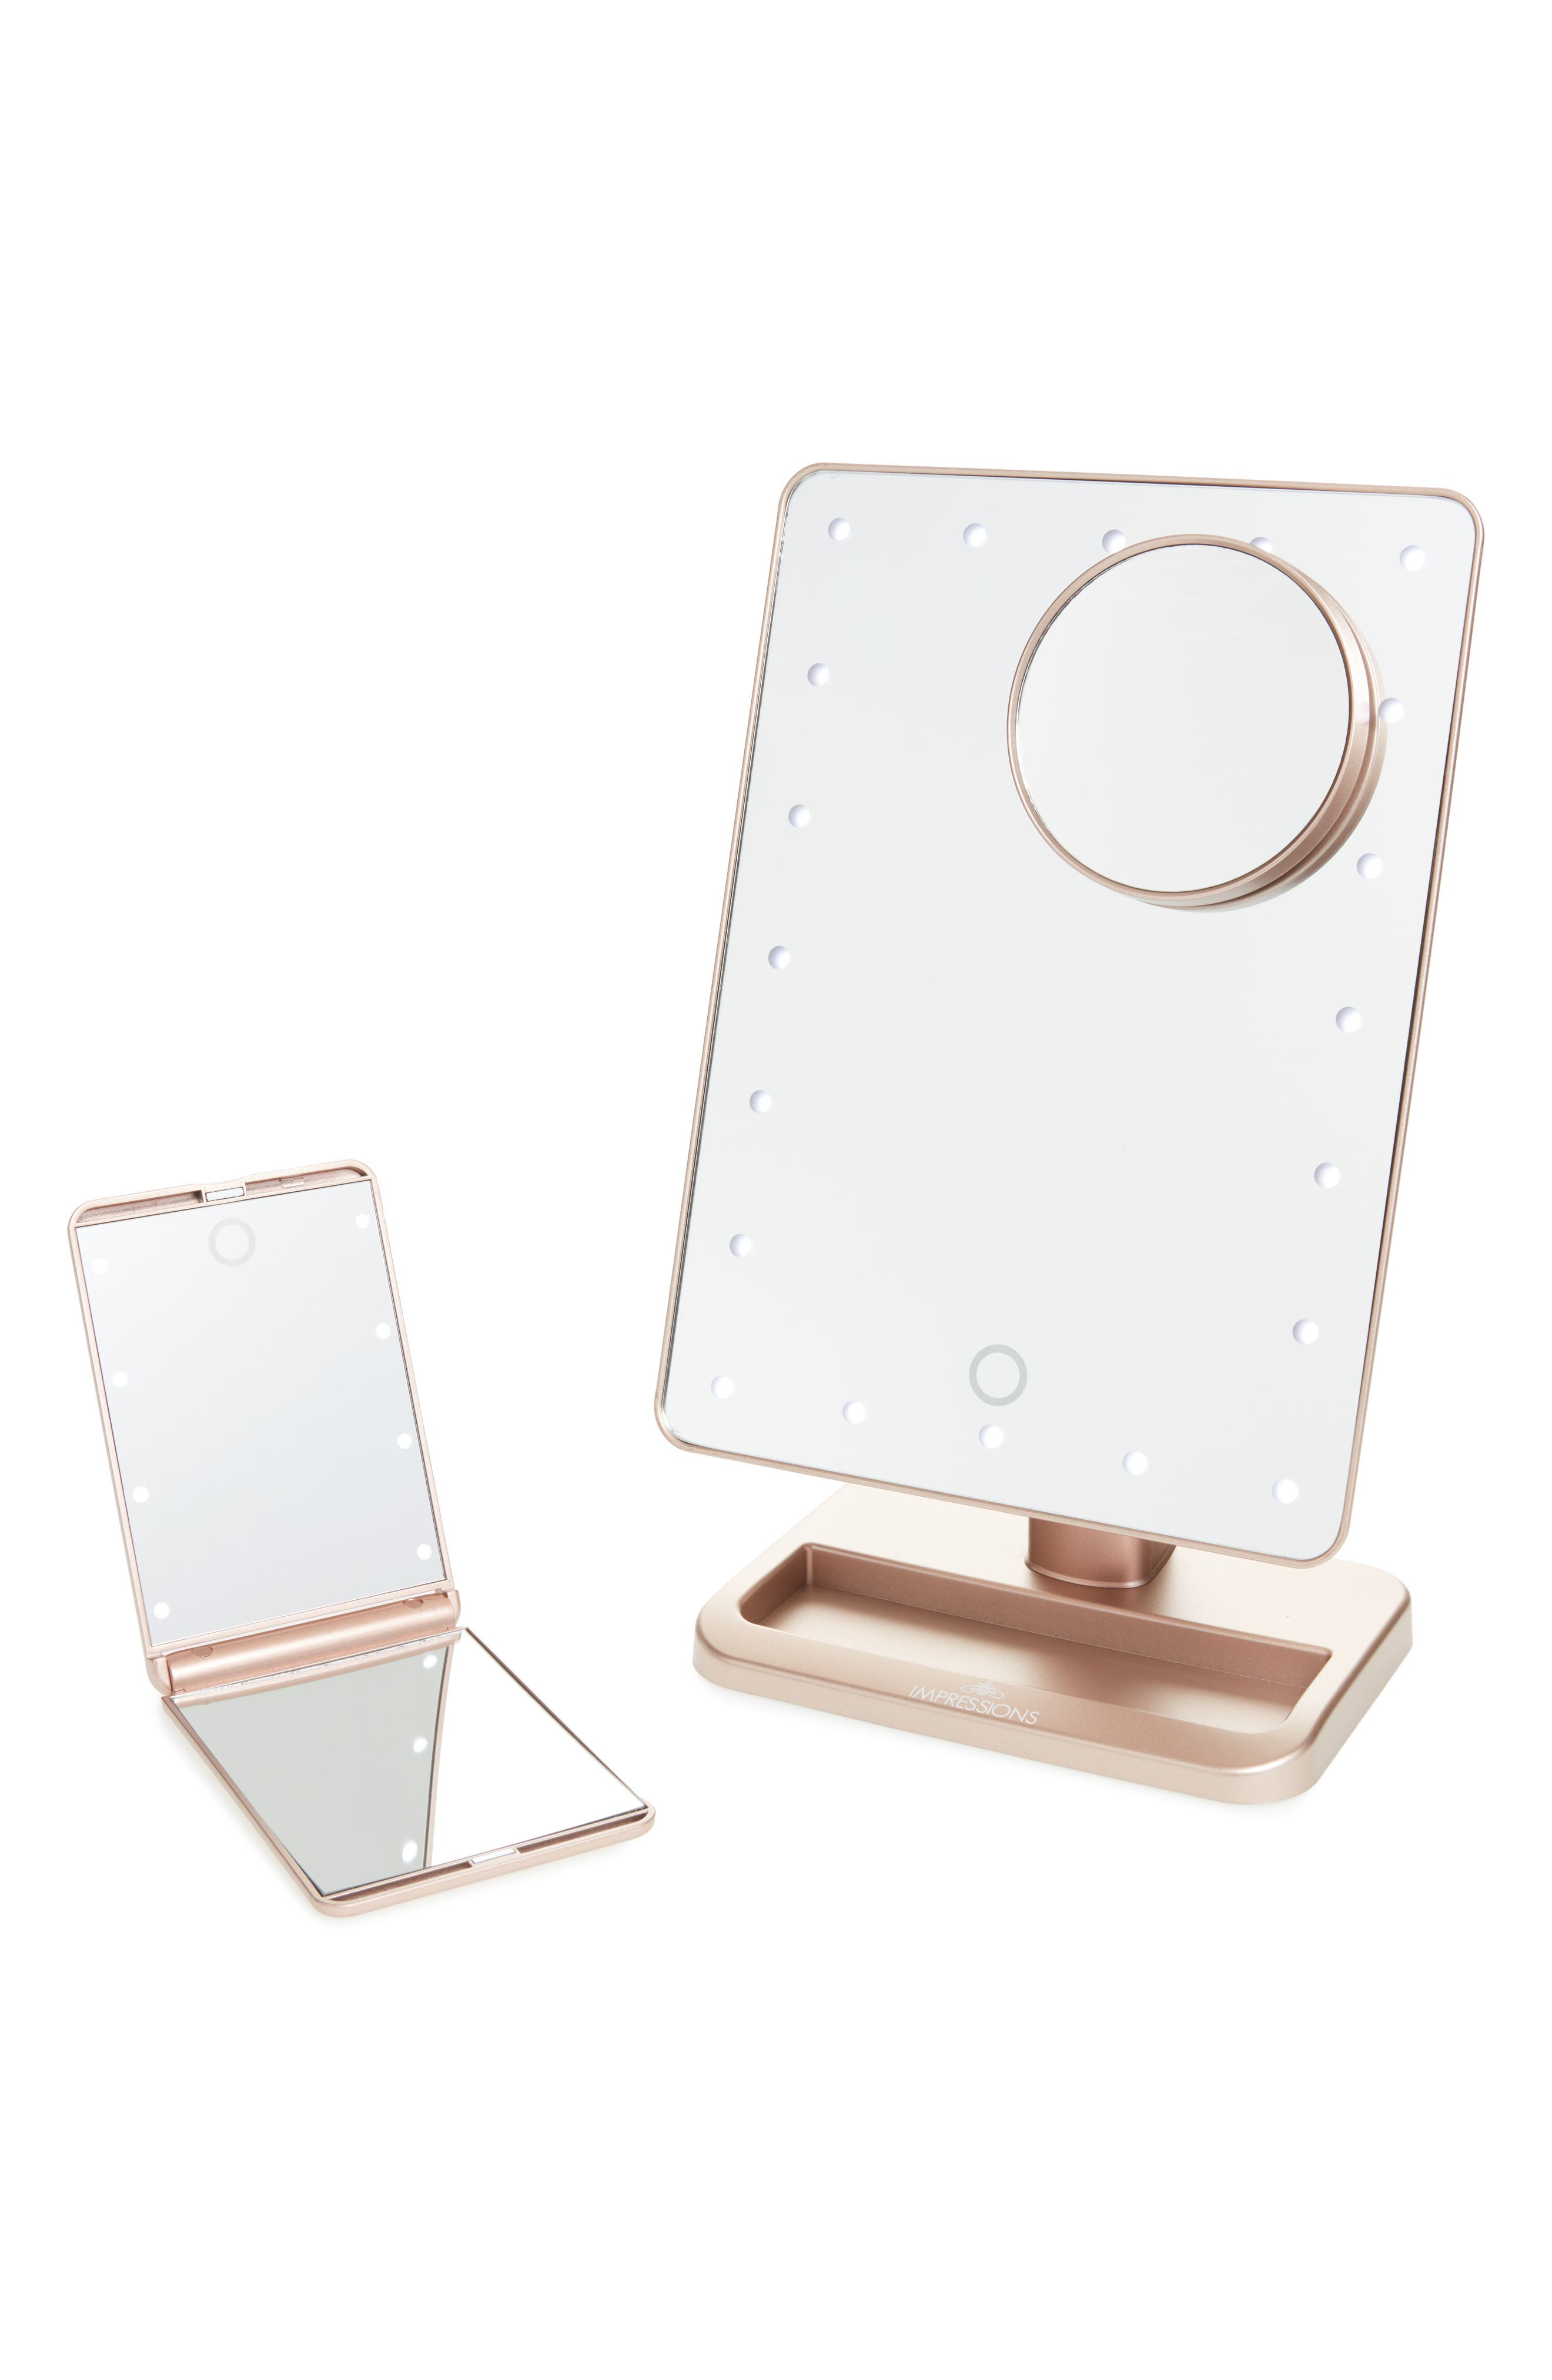 Touch XL Dimmable LED Makeup Mirror with Removable 5x Mirror & Compact Mirror,                         Main,                         color, ROSE GOLD/ ROSE GOLD